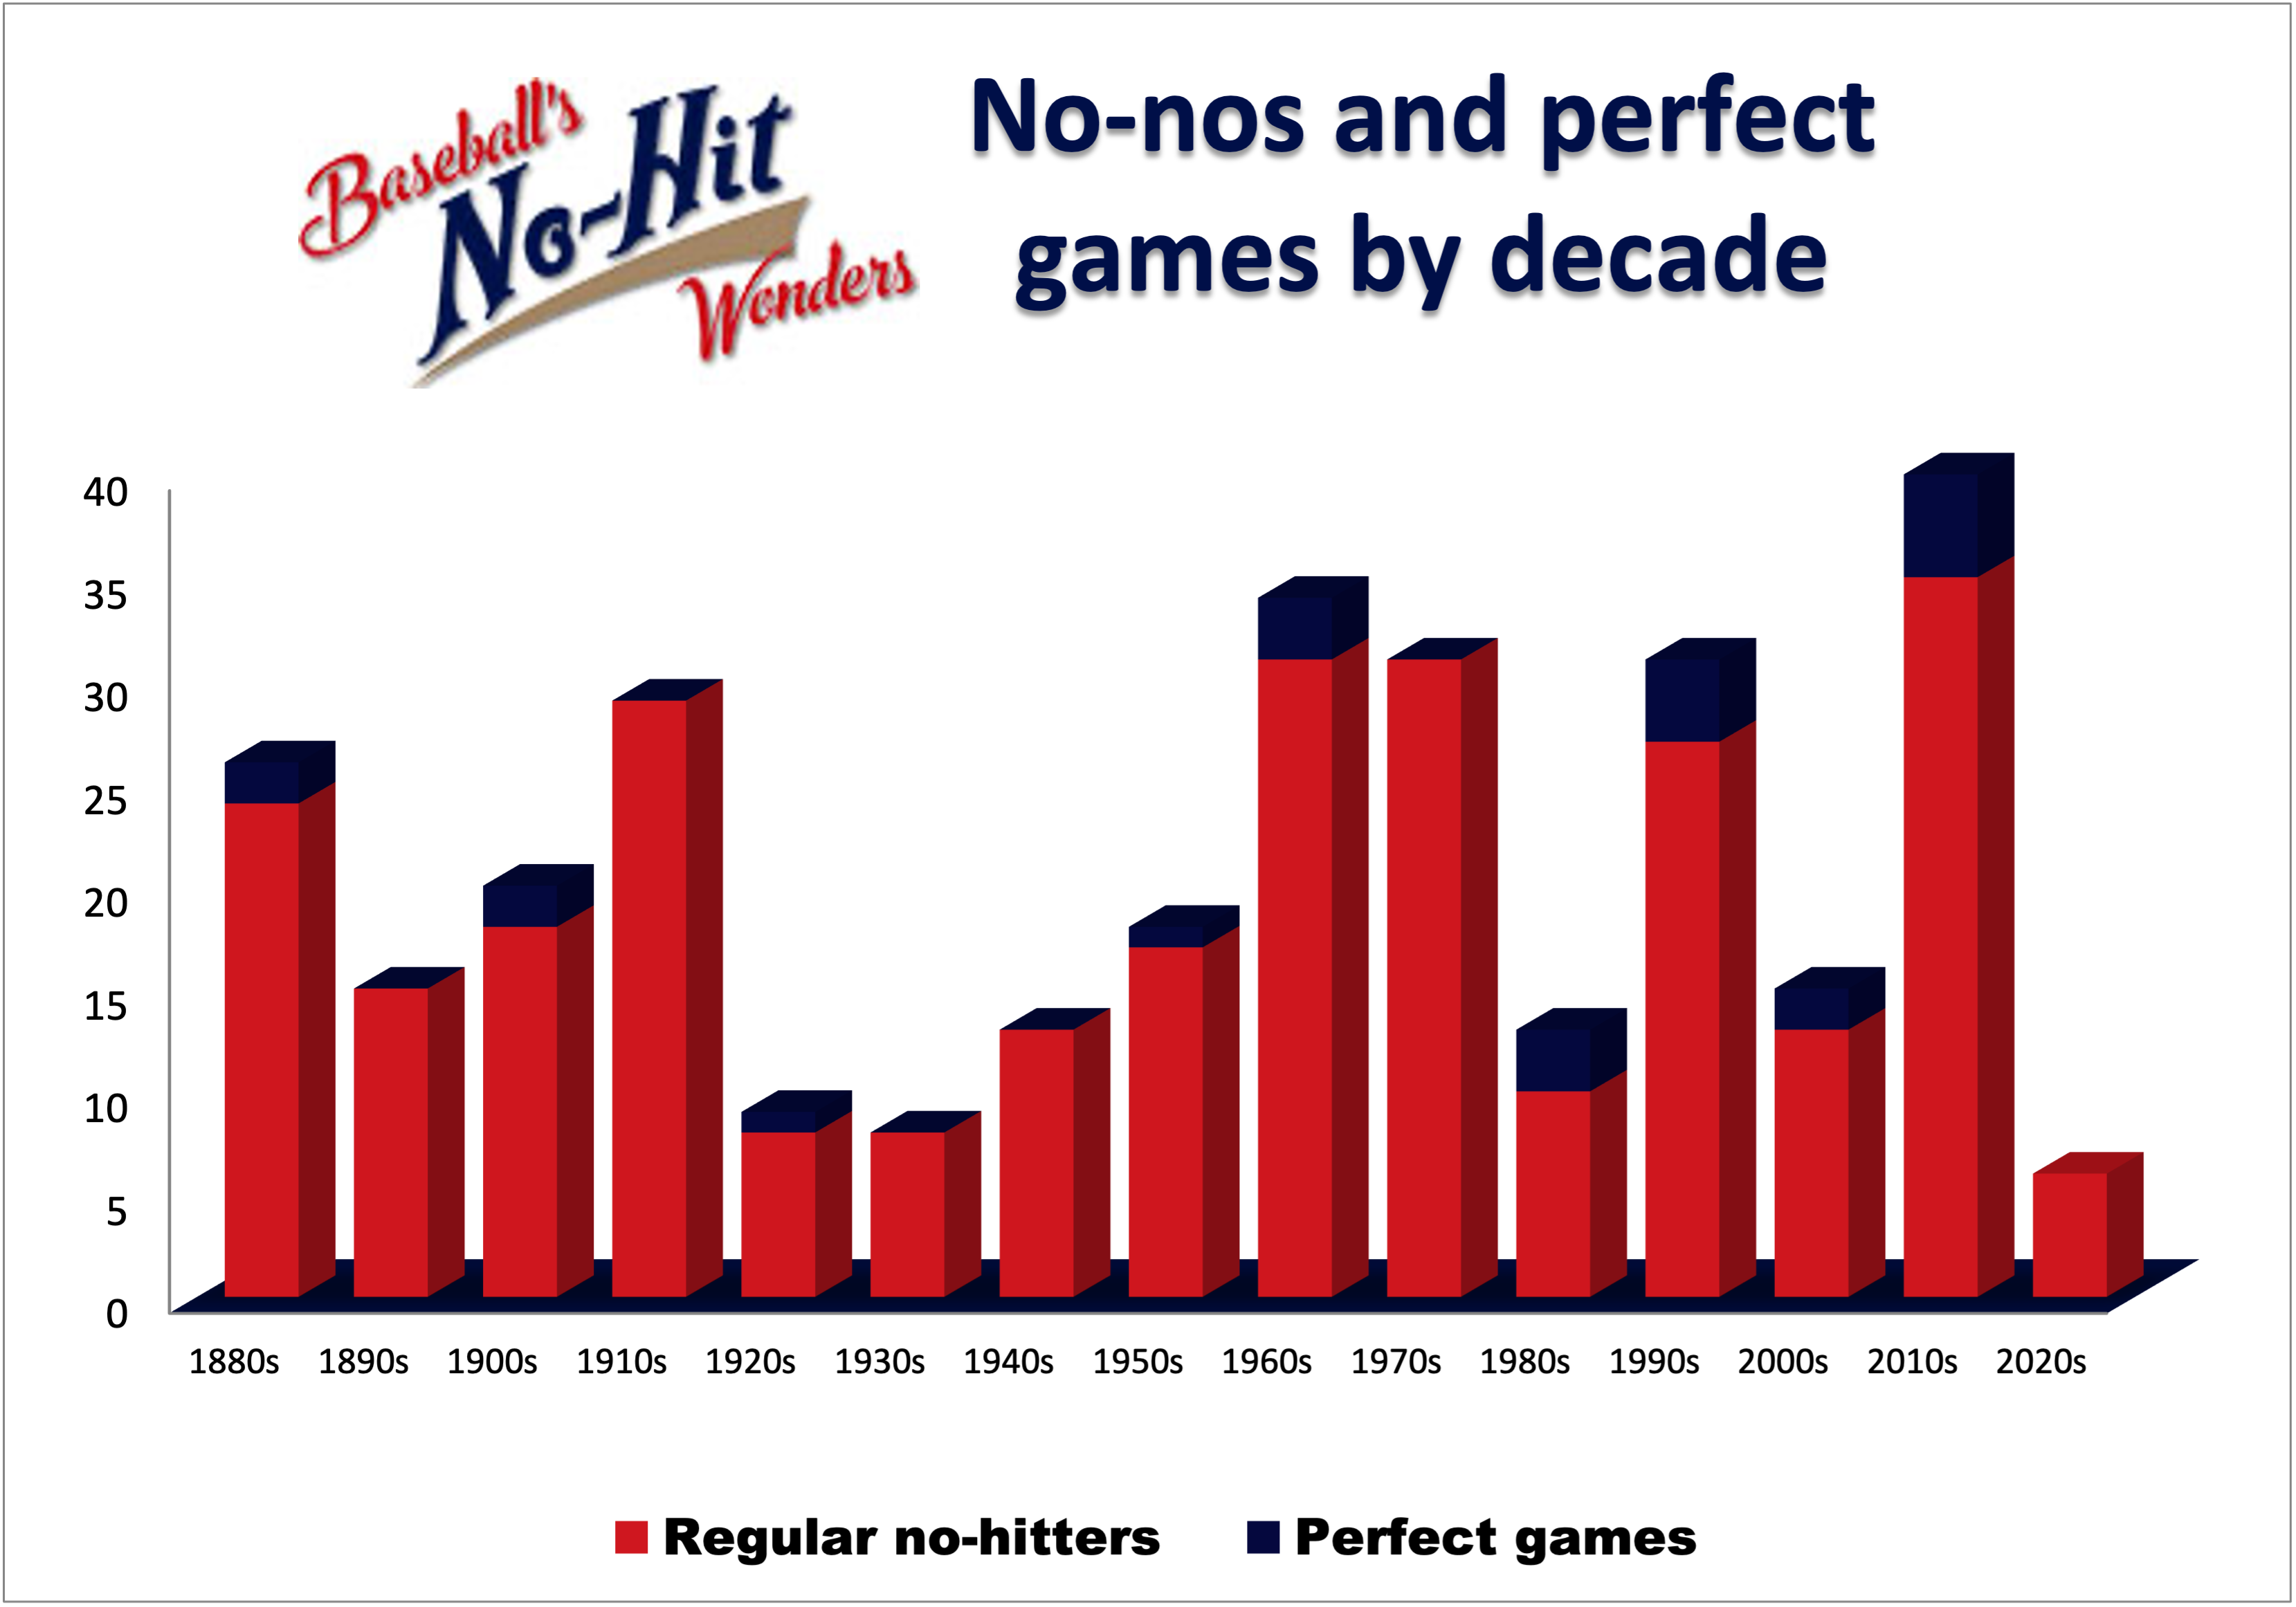 No-nos by decade